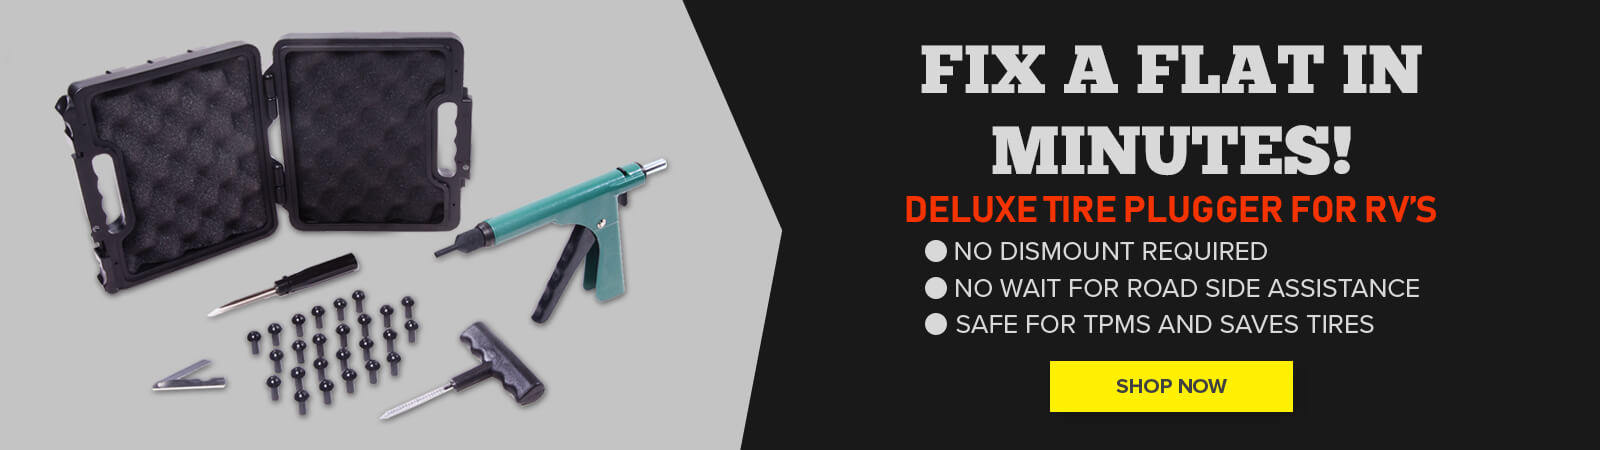 Deluxe tire plugger - shop now